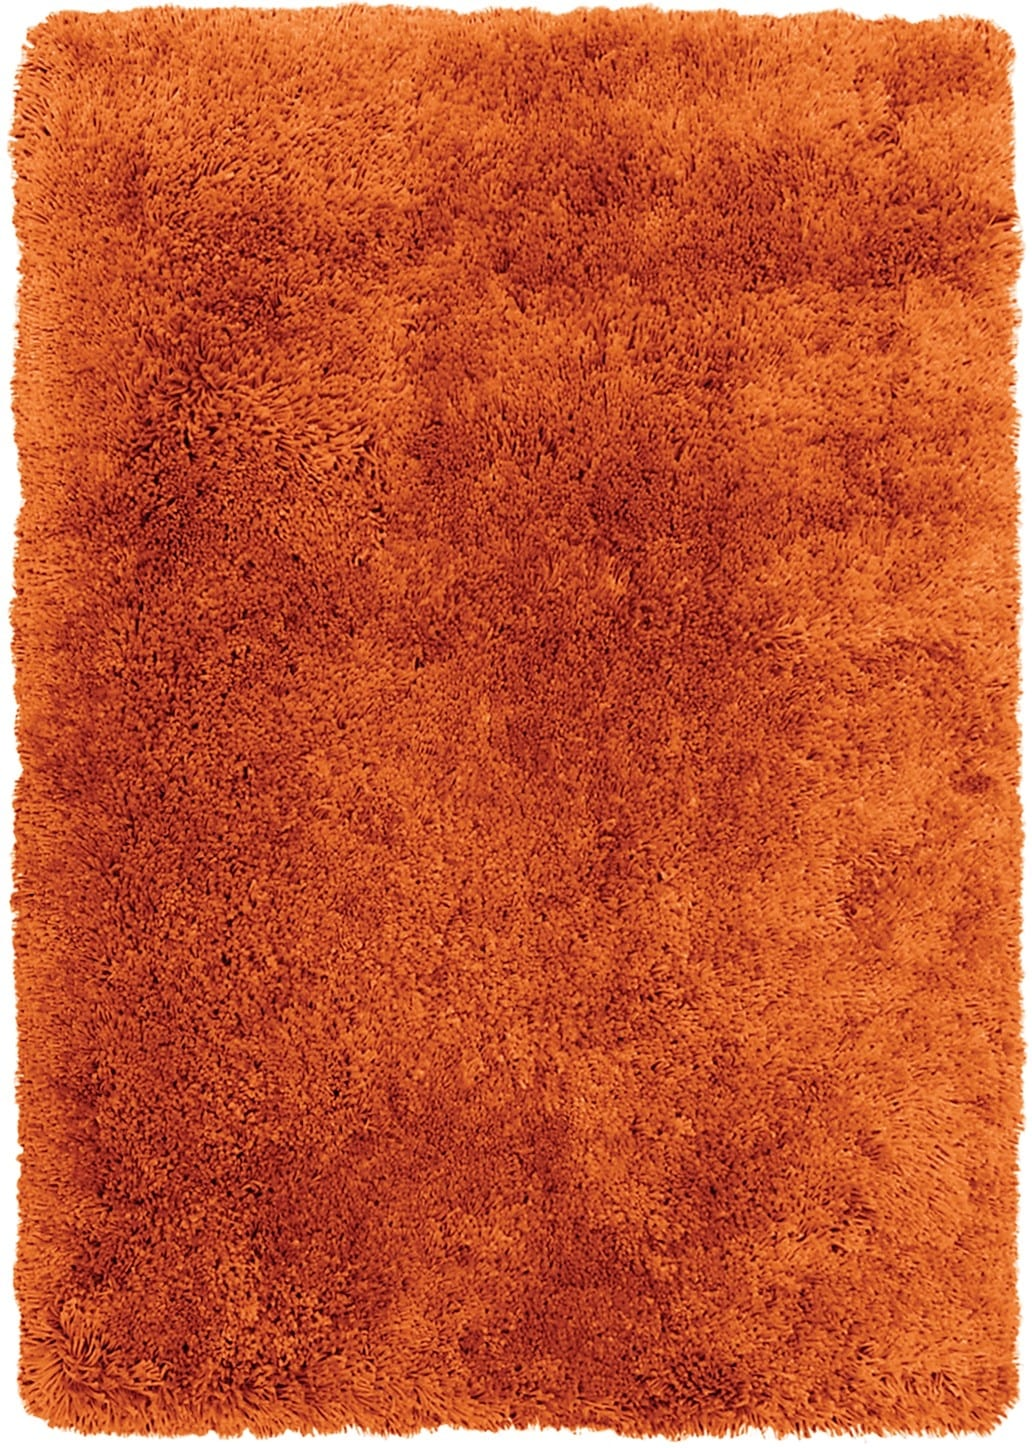 Orange Fashion Shag Area Rug – 4' x 5'